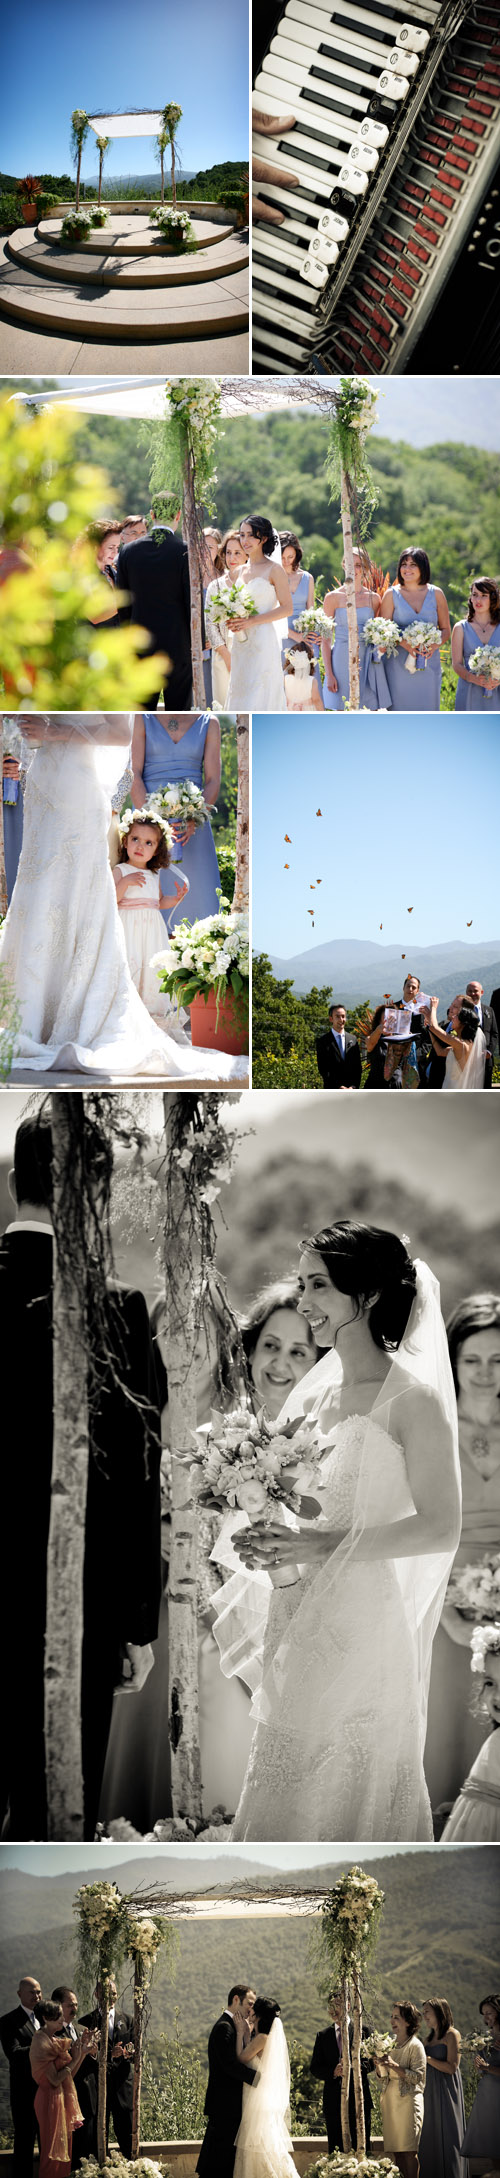 Persian and Western real wedding at Carmel Valley's Holman Ranch, photos by Alisha and Brook Photography